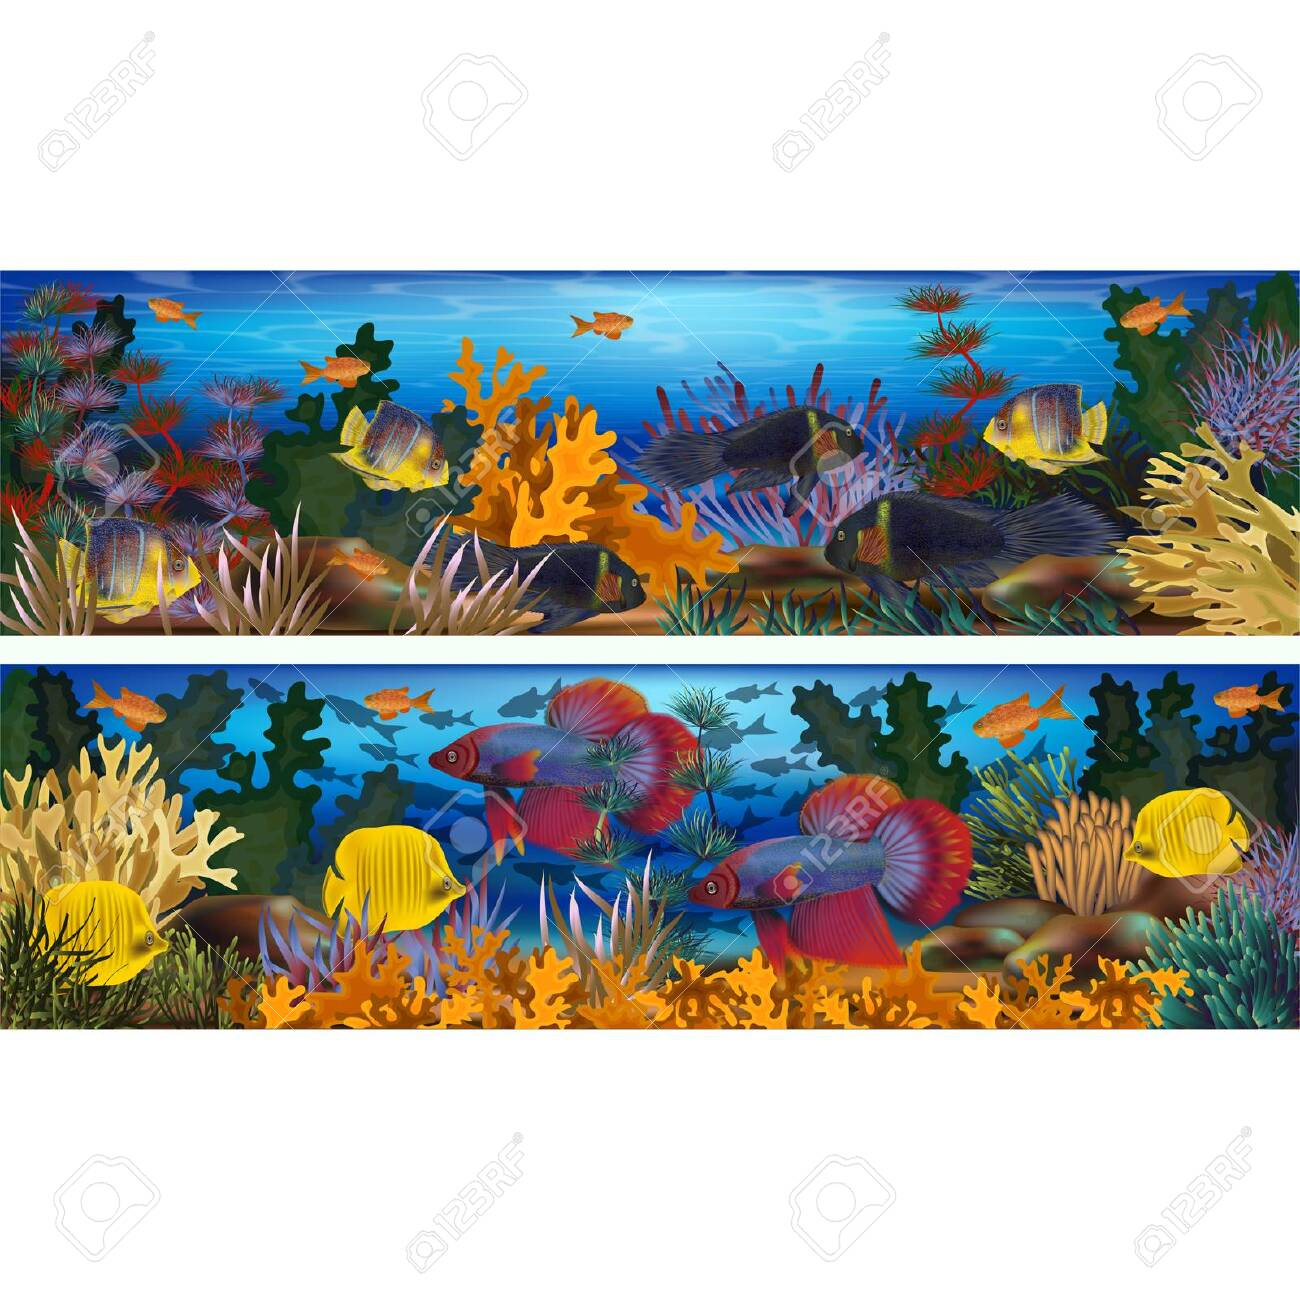 Underwater horizontal banners with algae and tropical fish, vector illustration - 122763316